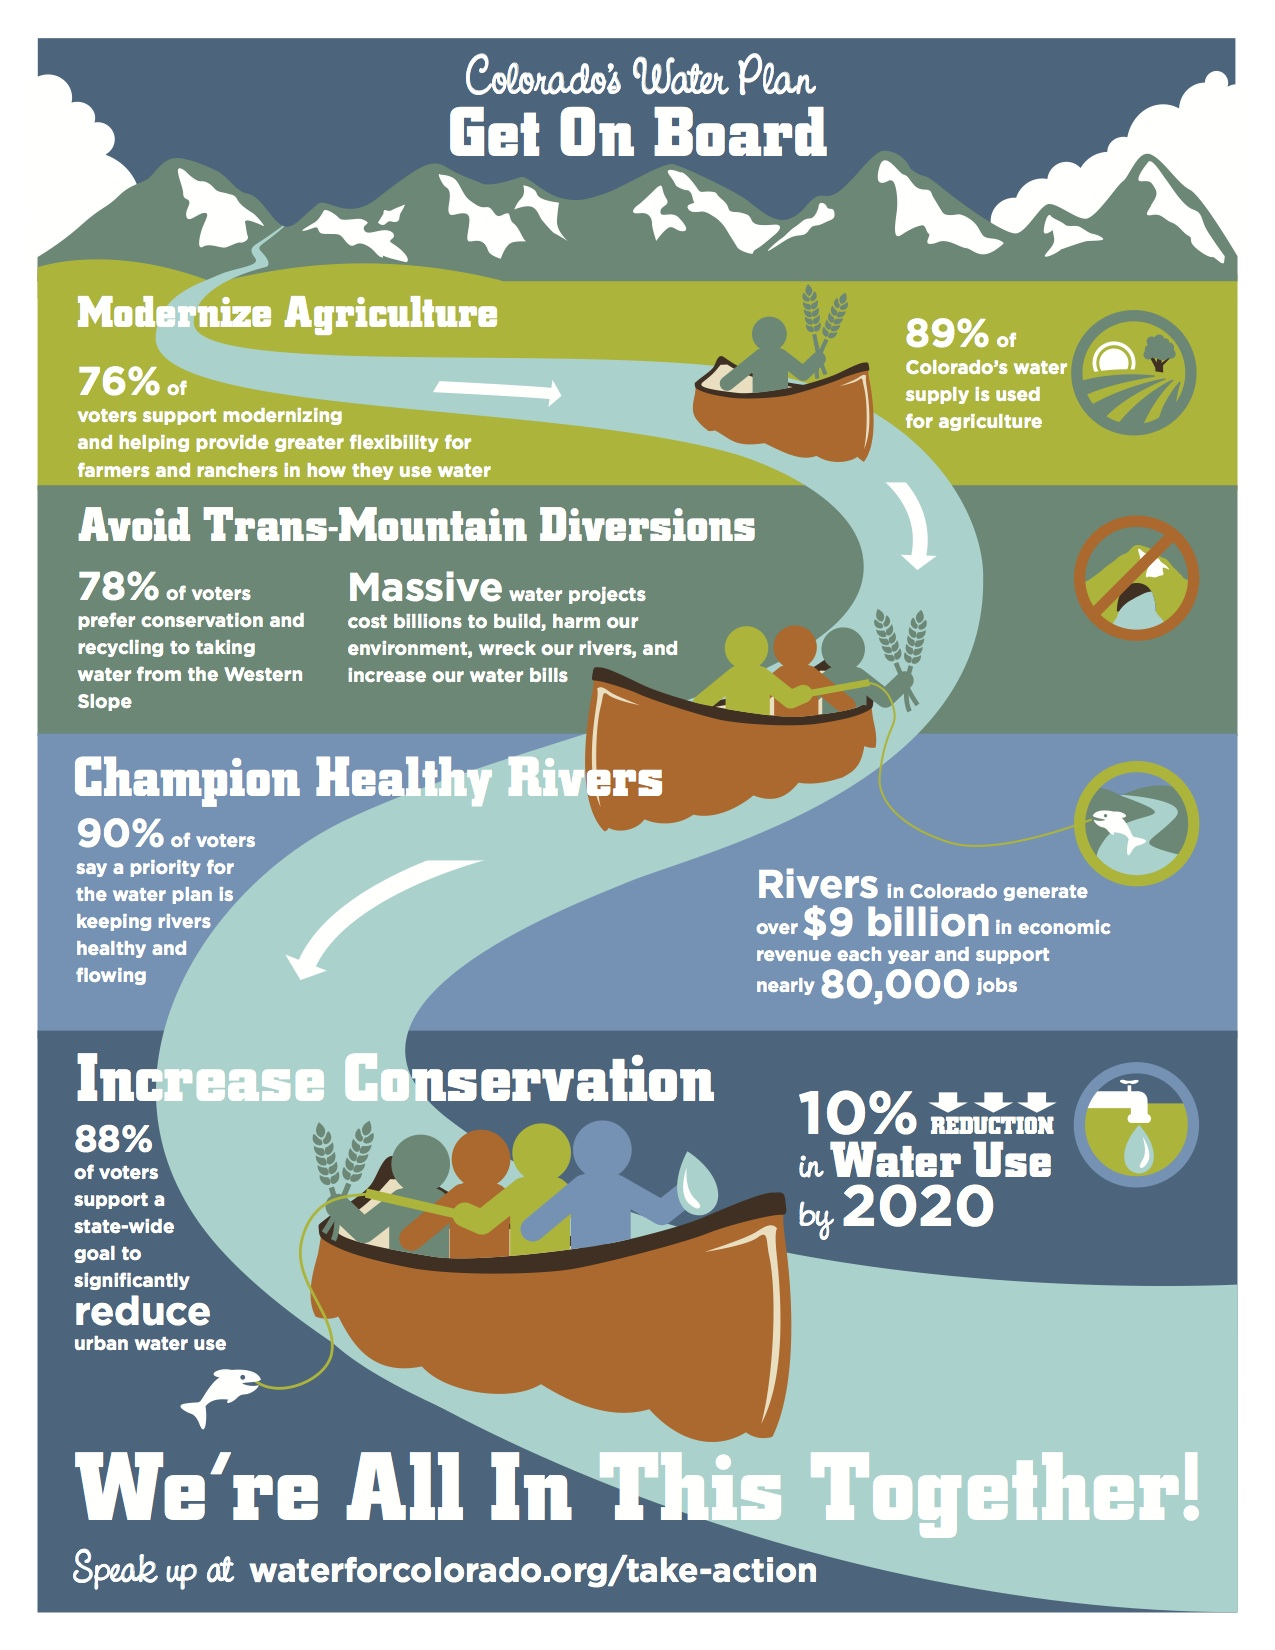 Water for Colorado Conservation Essentials Infographic